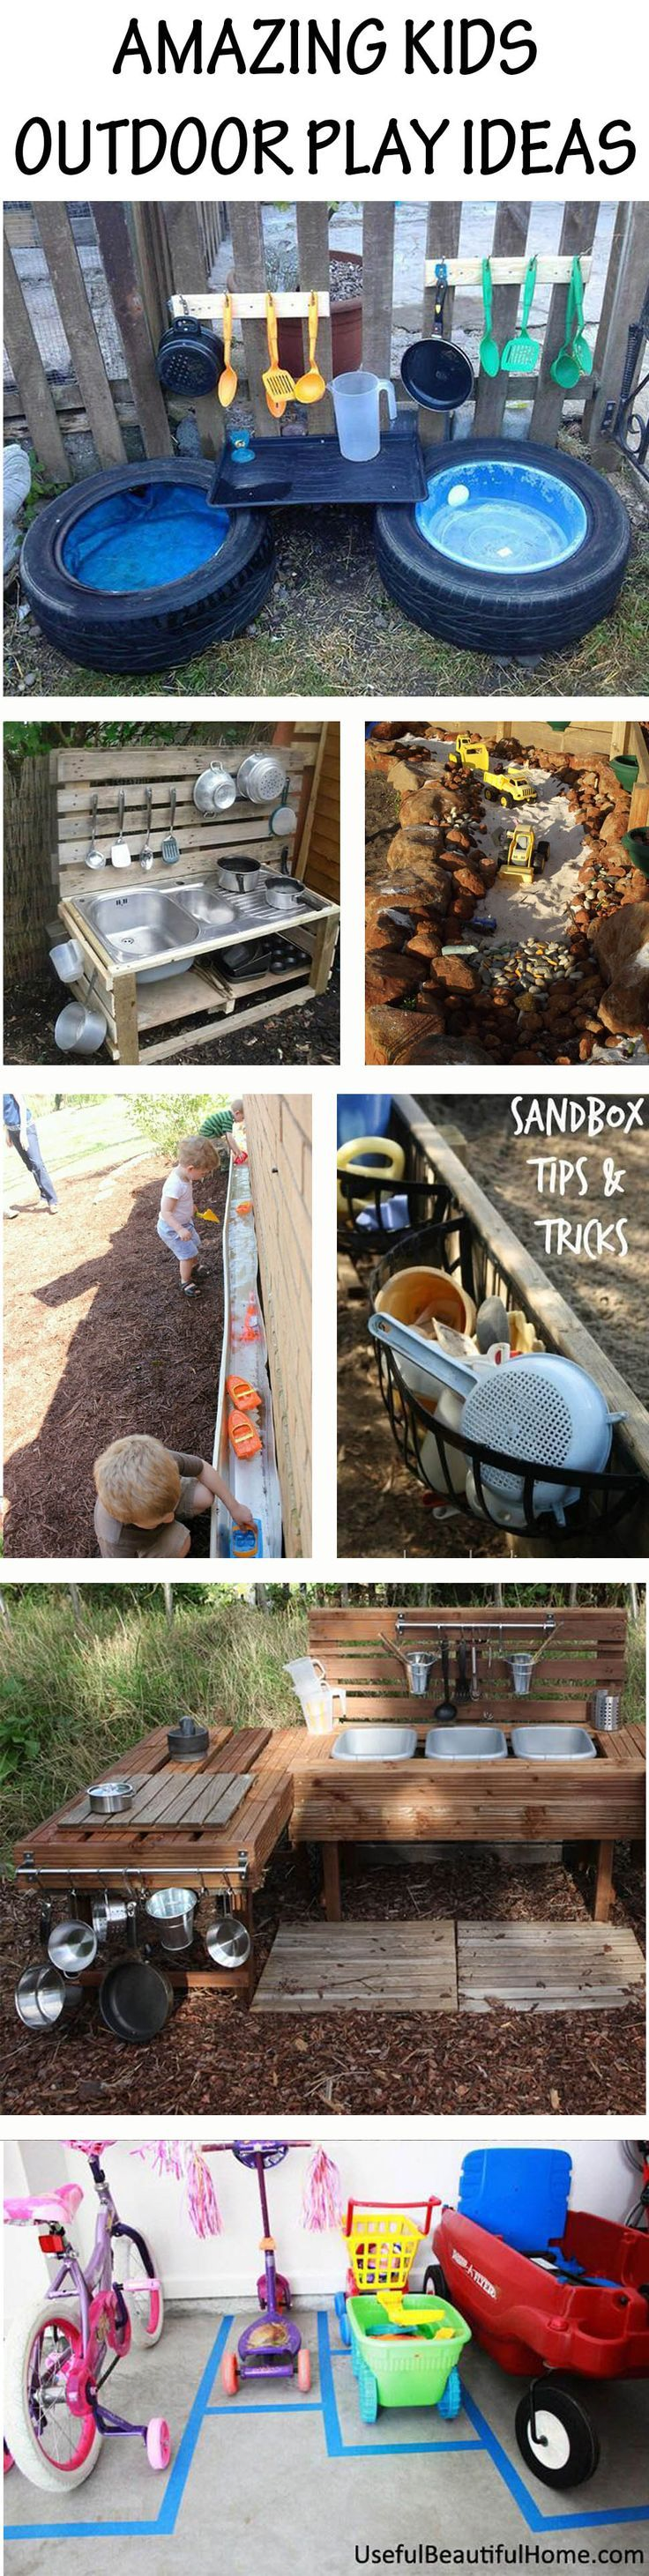 best 25 kids outdoor toys ideas on pinterest backyard ideas for